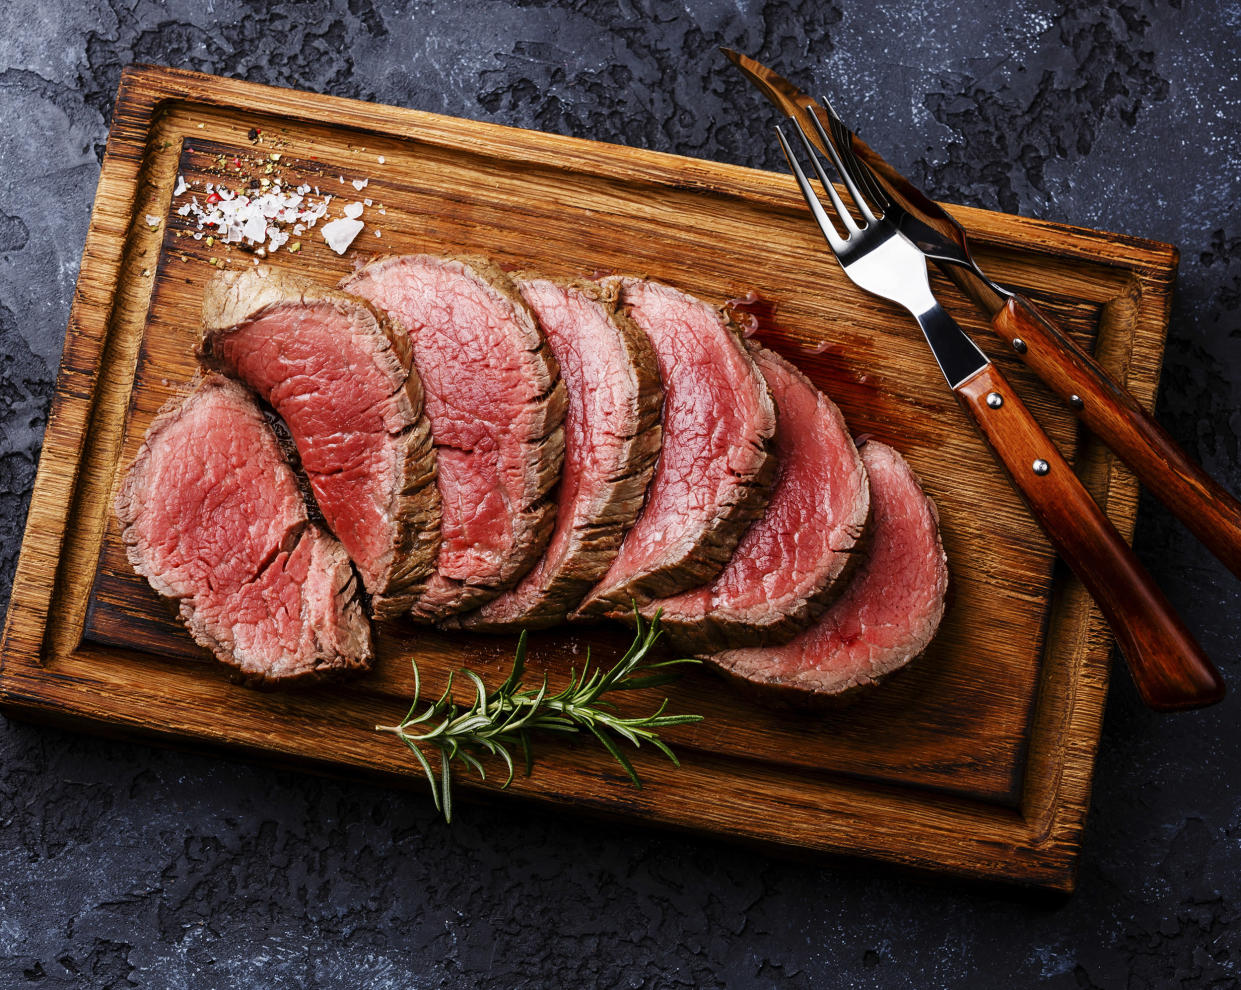 A rare steak should be cooked to an internal temperature of 130 degrees.  (Getty Images)